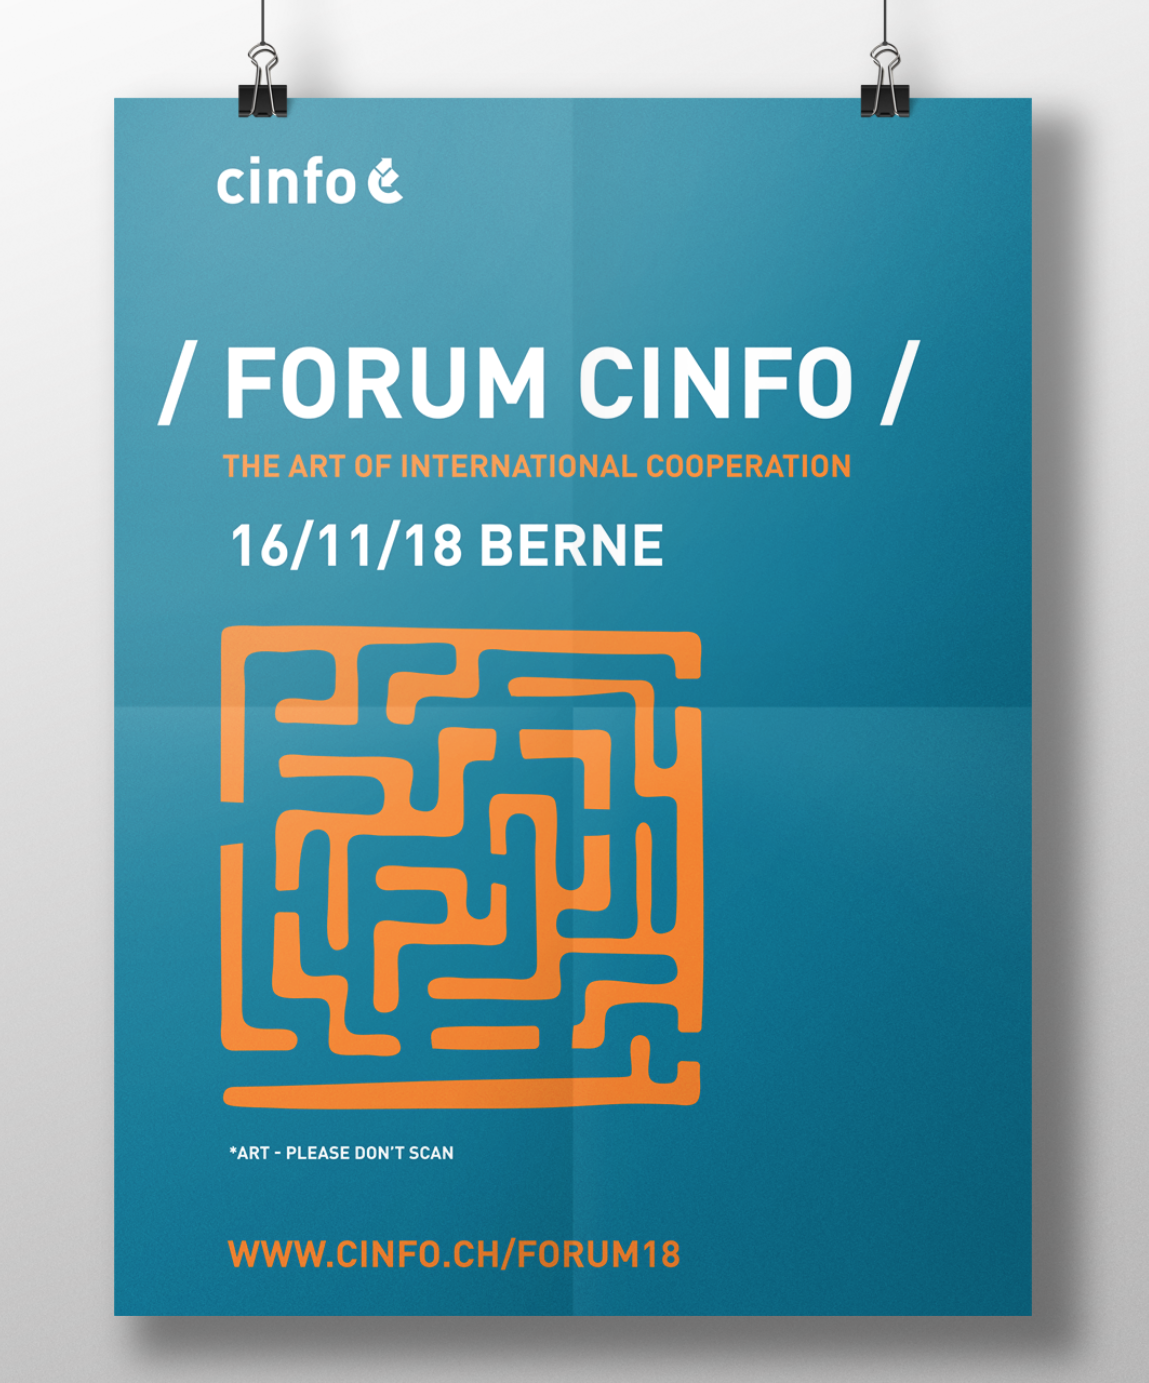 Design a poster for Forum cinfo - The Art of International Cooperation